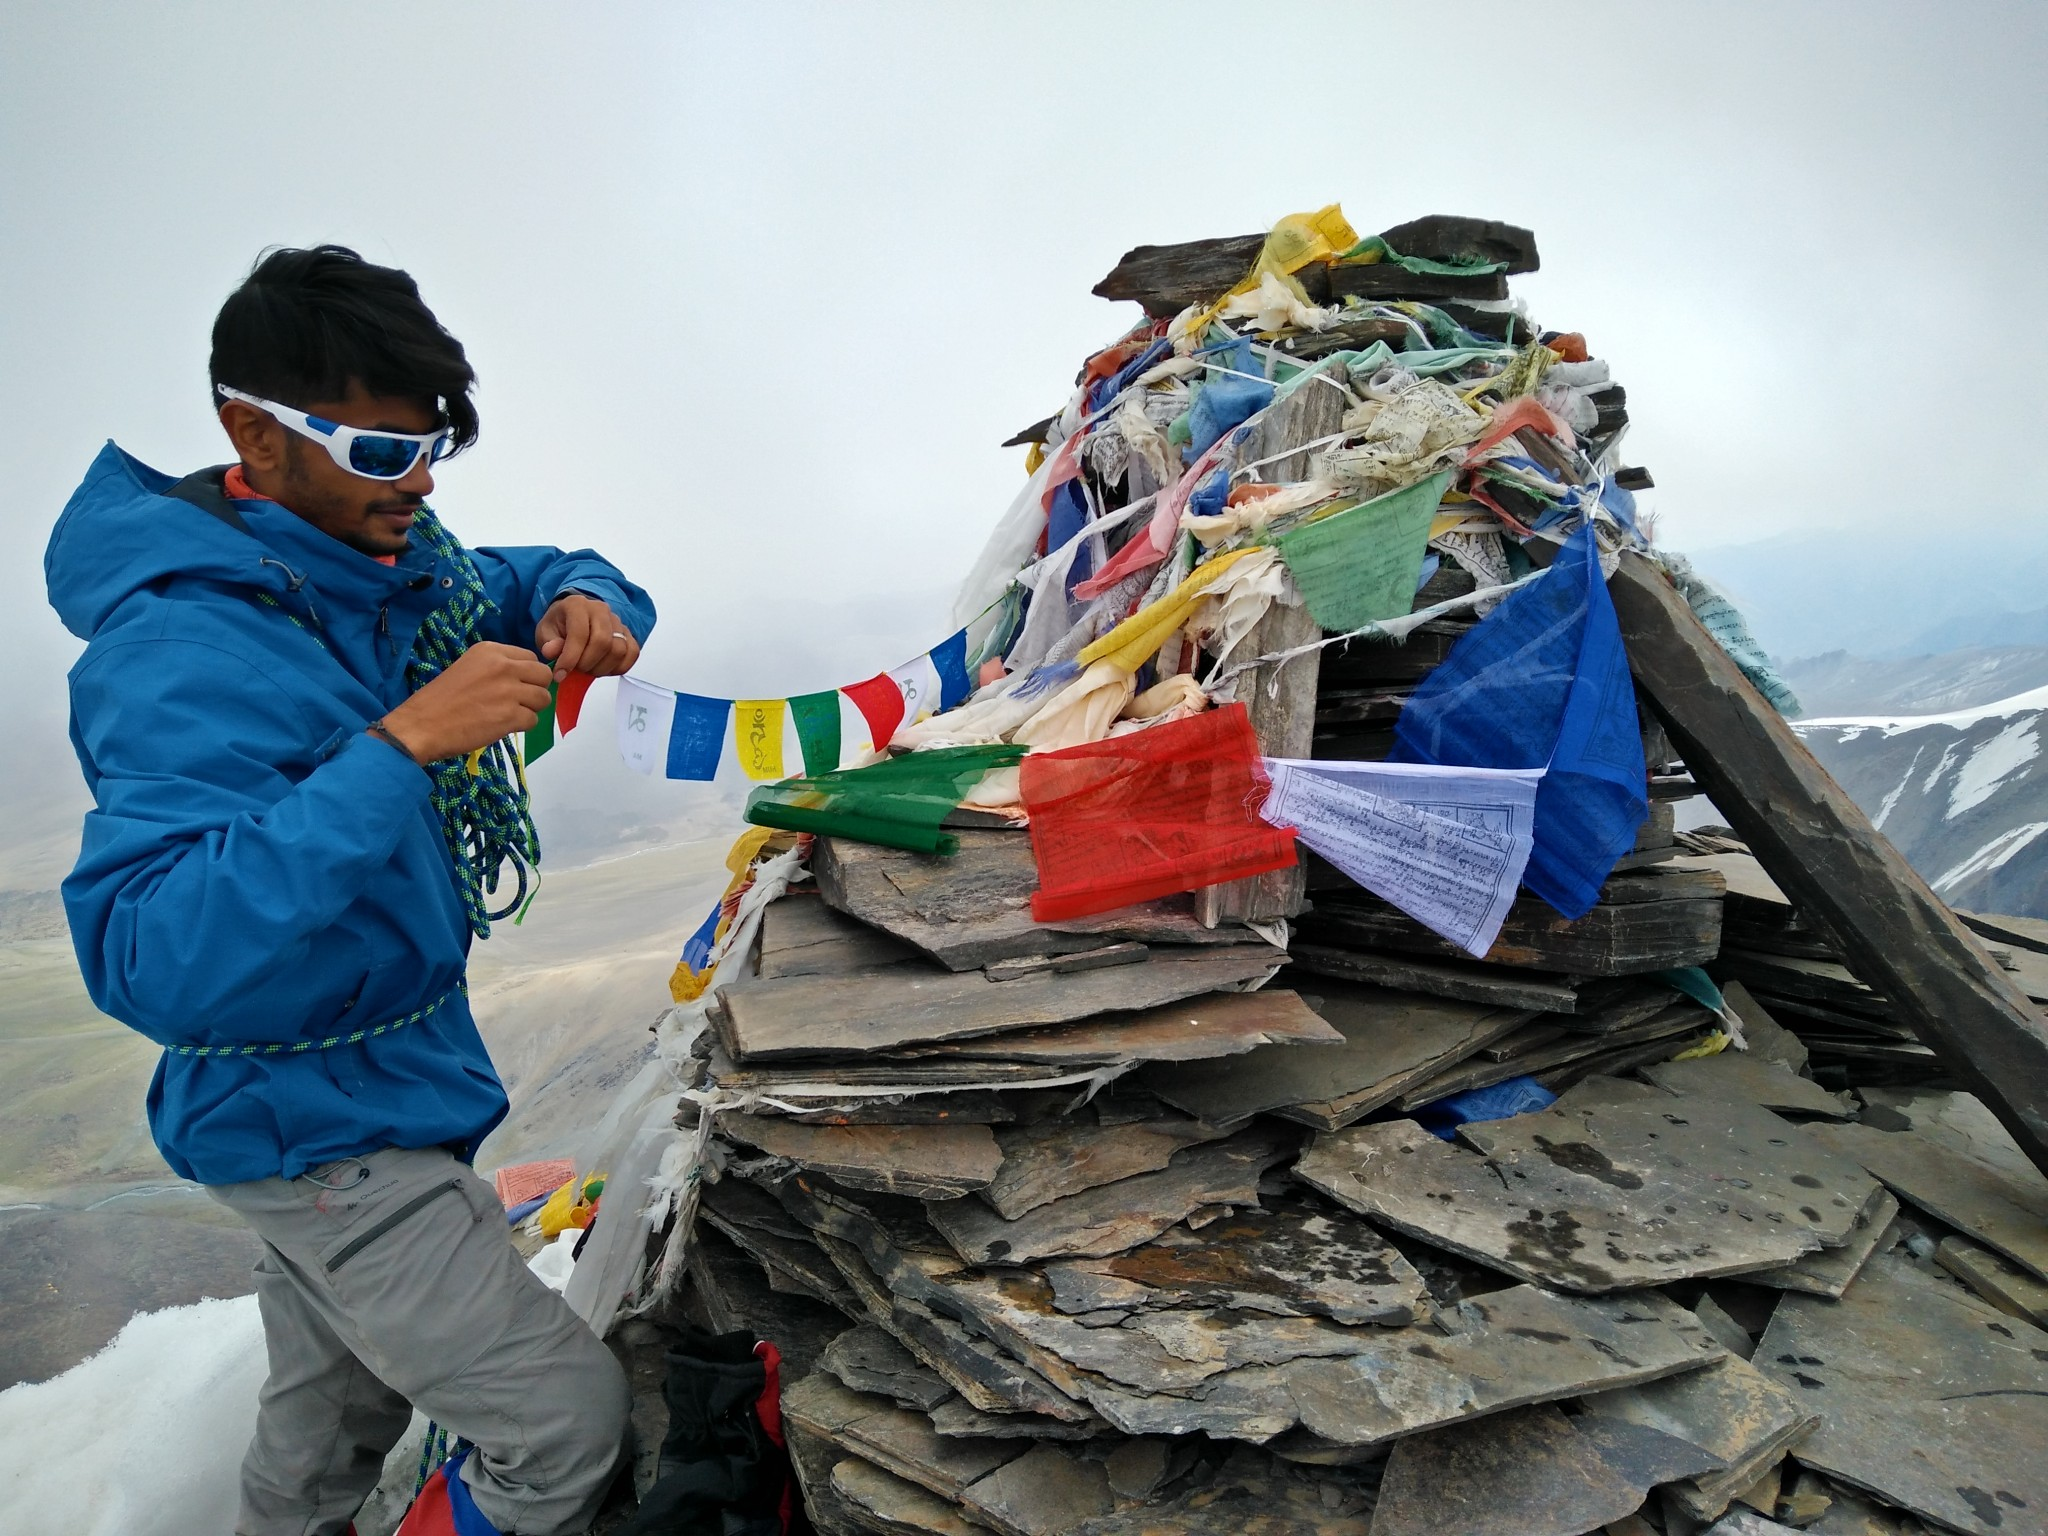 Much needed prayer flags at the summit from Jan and Me.